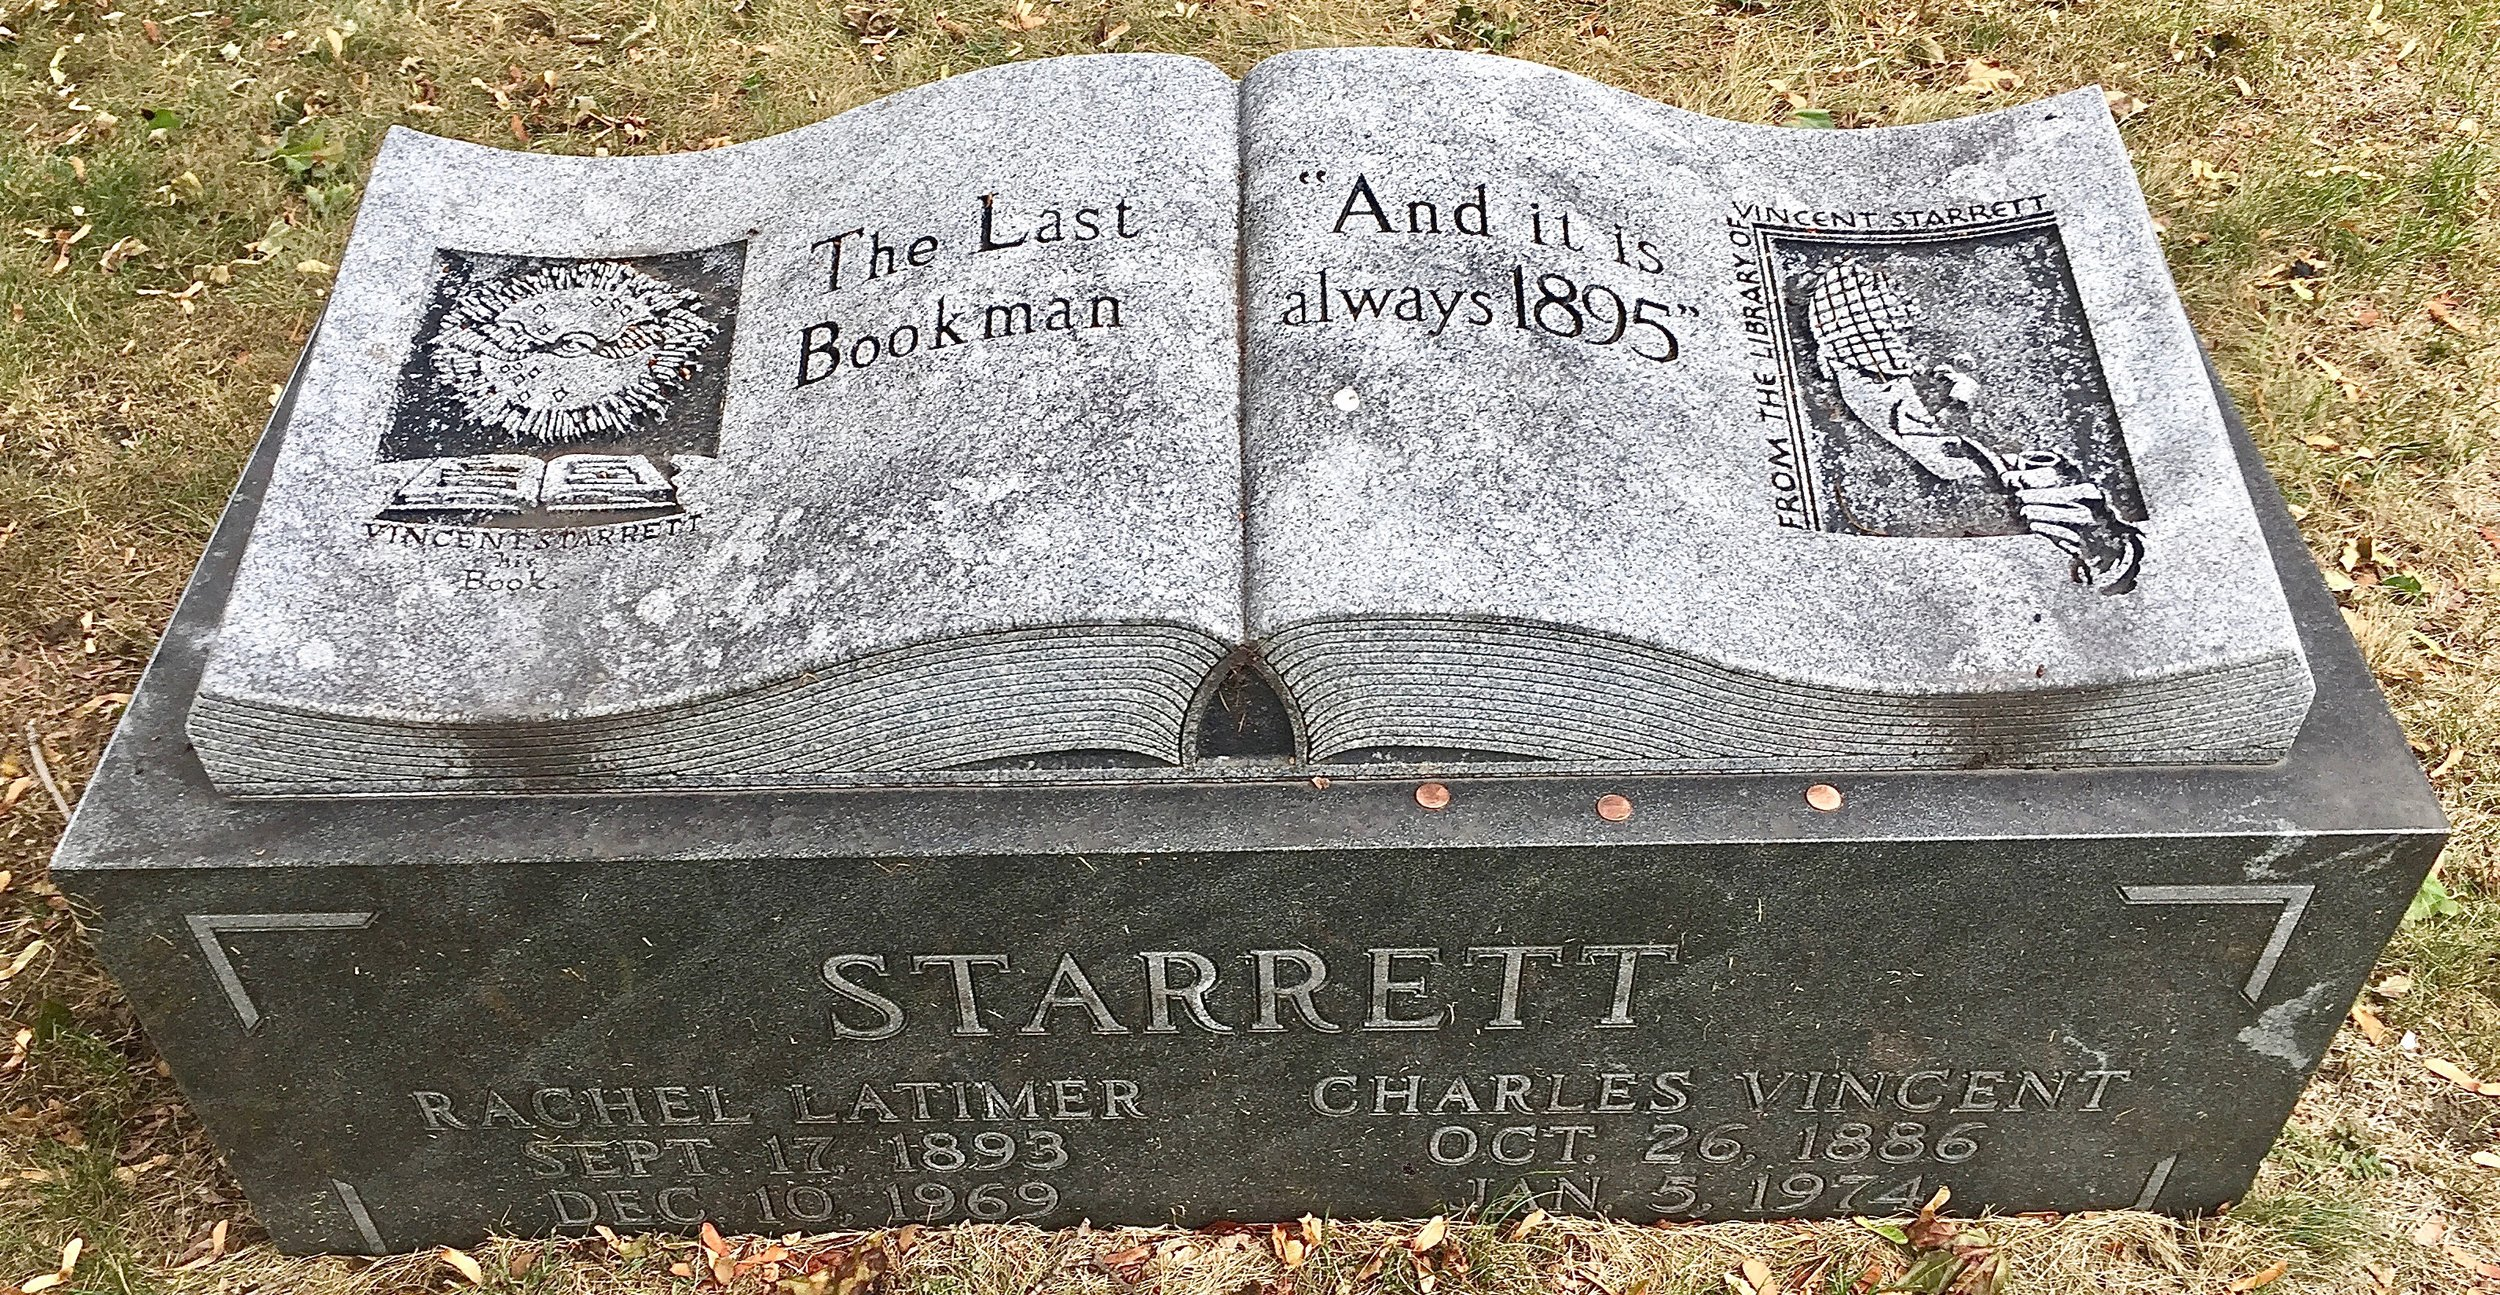 """The headstone for Rachel and Vincent Starrett in Graceland Cemetery, Chicago. The stone has been refurbished since this photo was taken three years ago, but it still retains the last phrase from """"221B"""": """"And it is always 1895."""" The sonnet and Starrett will be forever linked. (Photo taken by the author.)"""